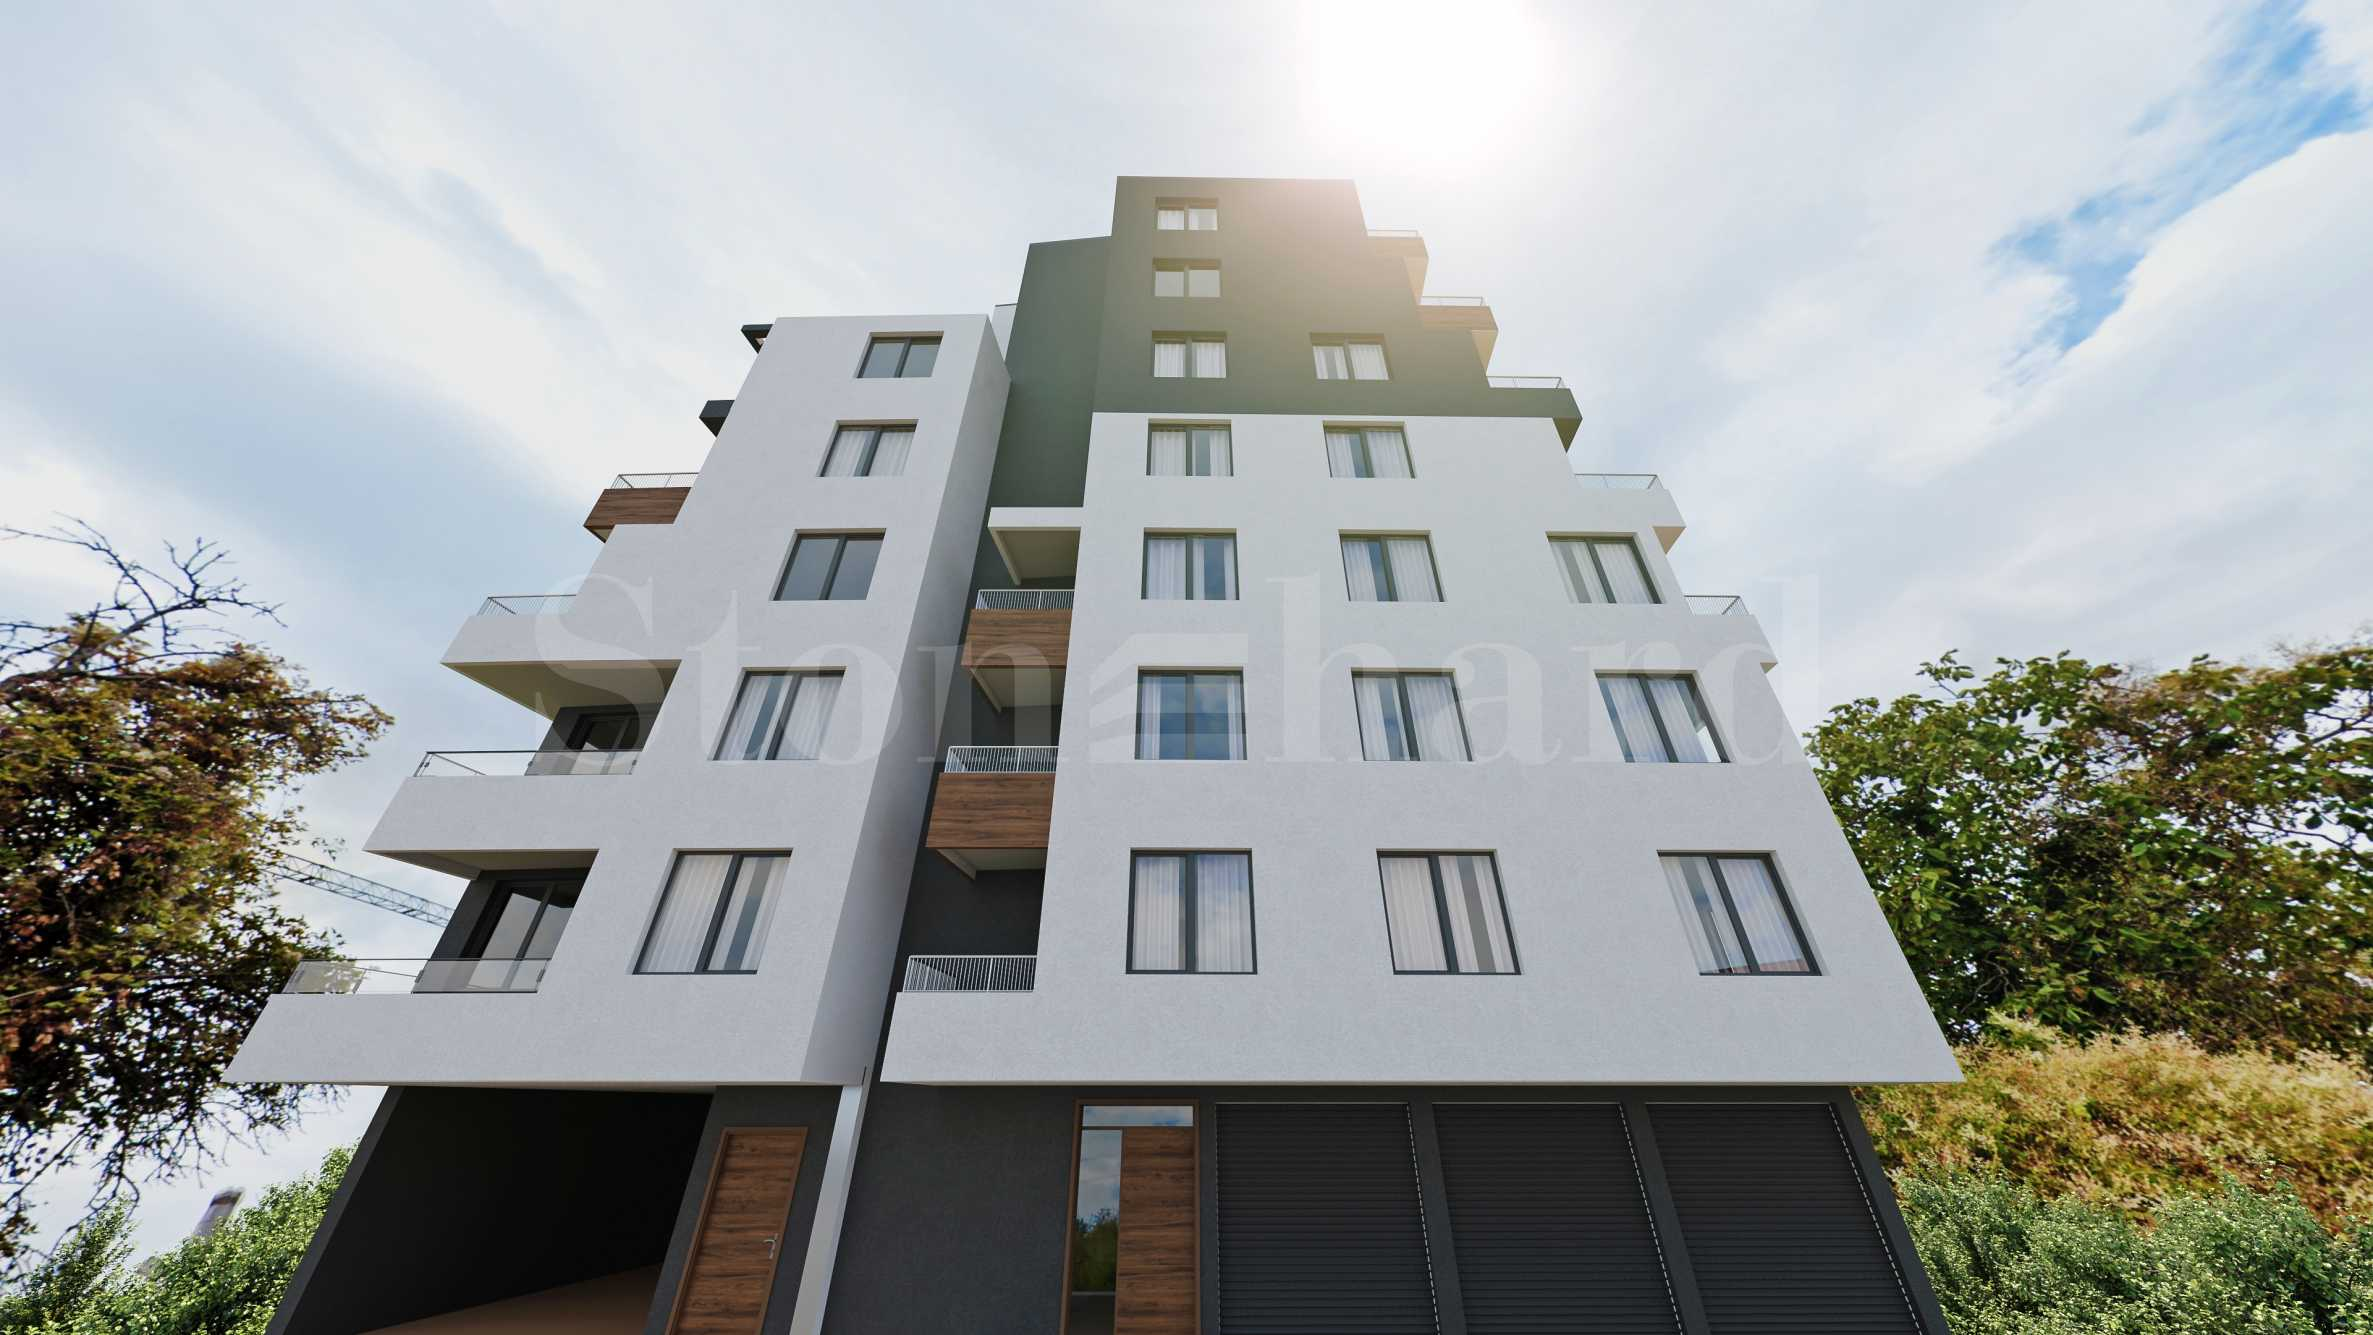 New-build apartments, garages and parking spaces in Pchelina area1 - Stonehard